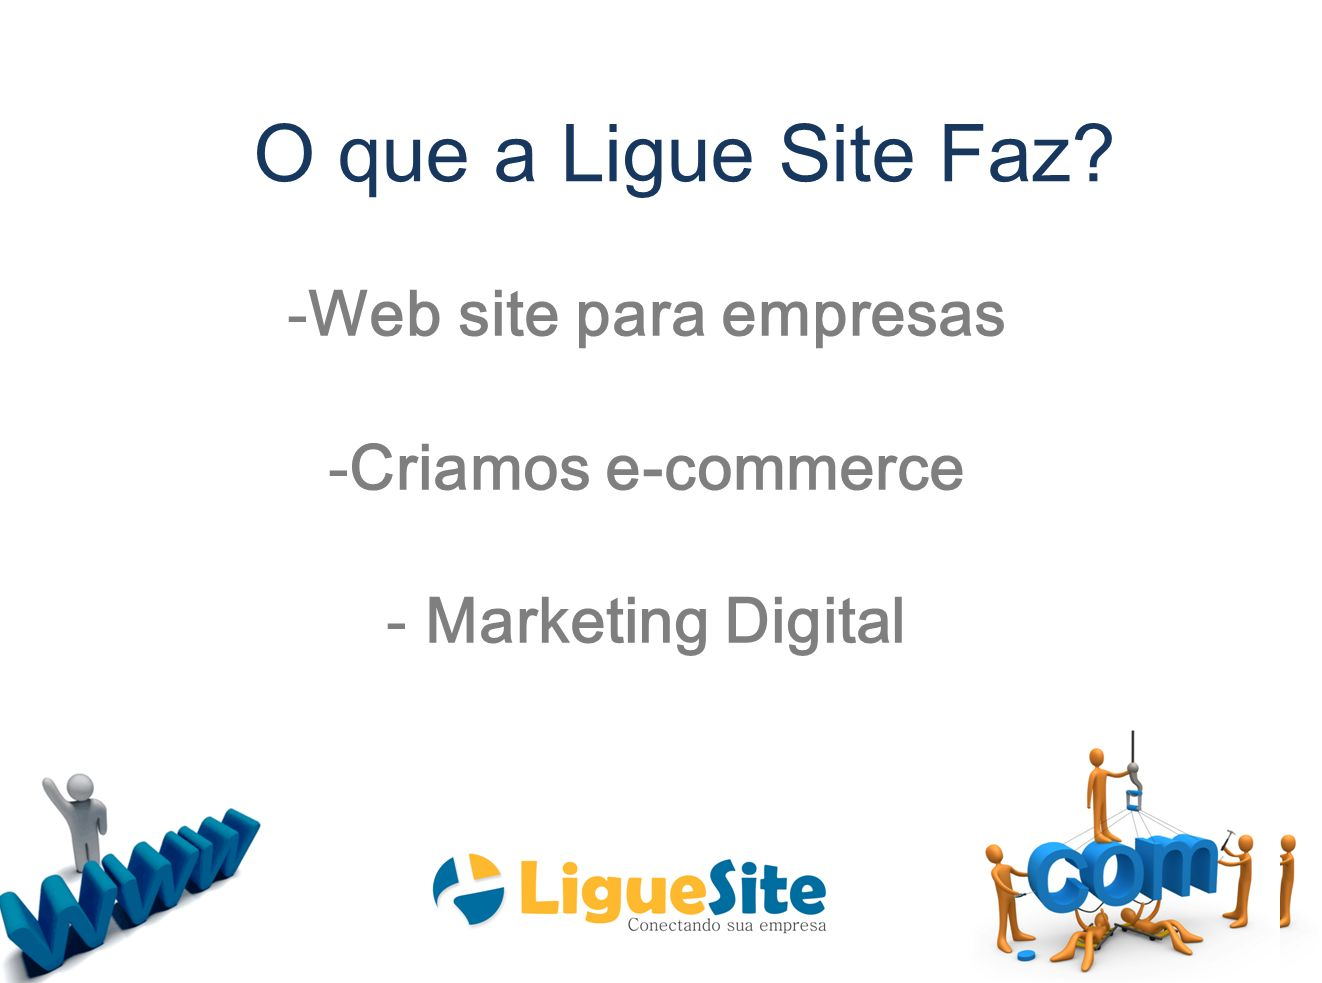 Do Papel à internet O que a Ligue Site Faz